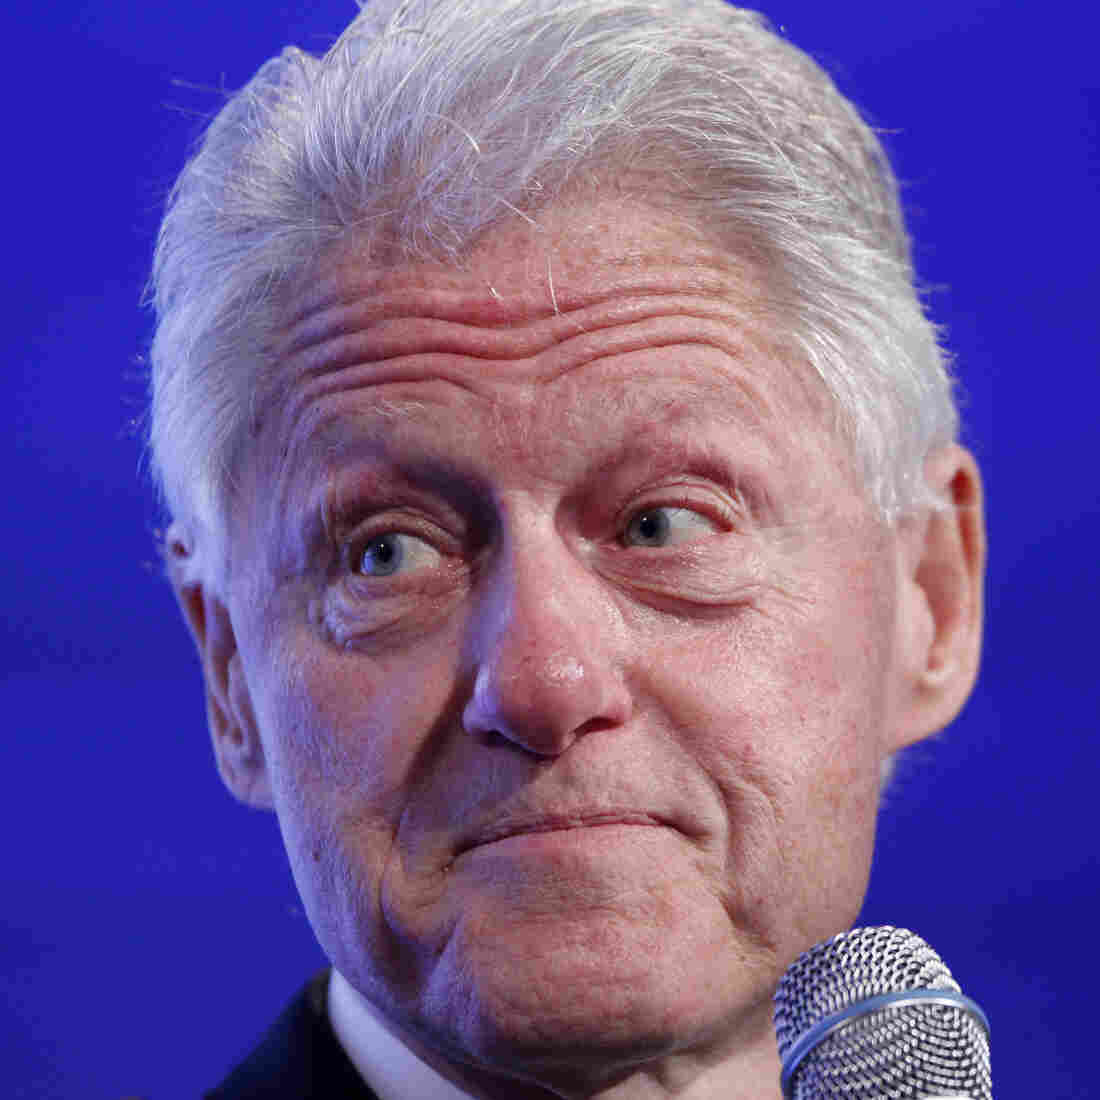 4 Things We Learned About What Bill Clinton Is Up To